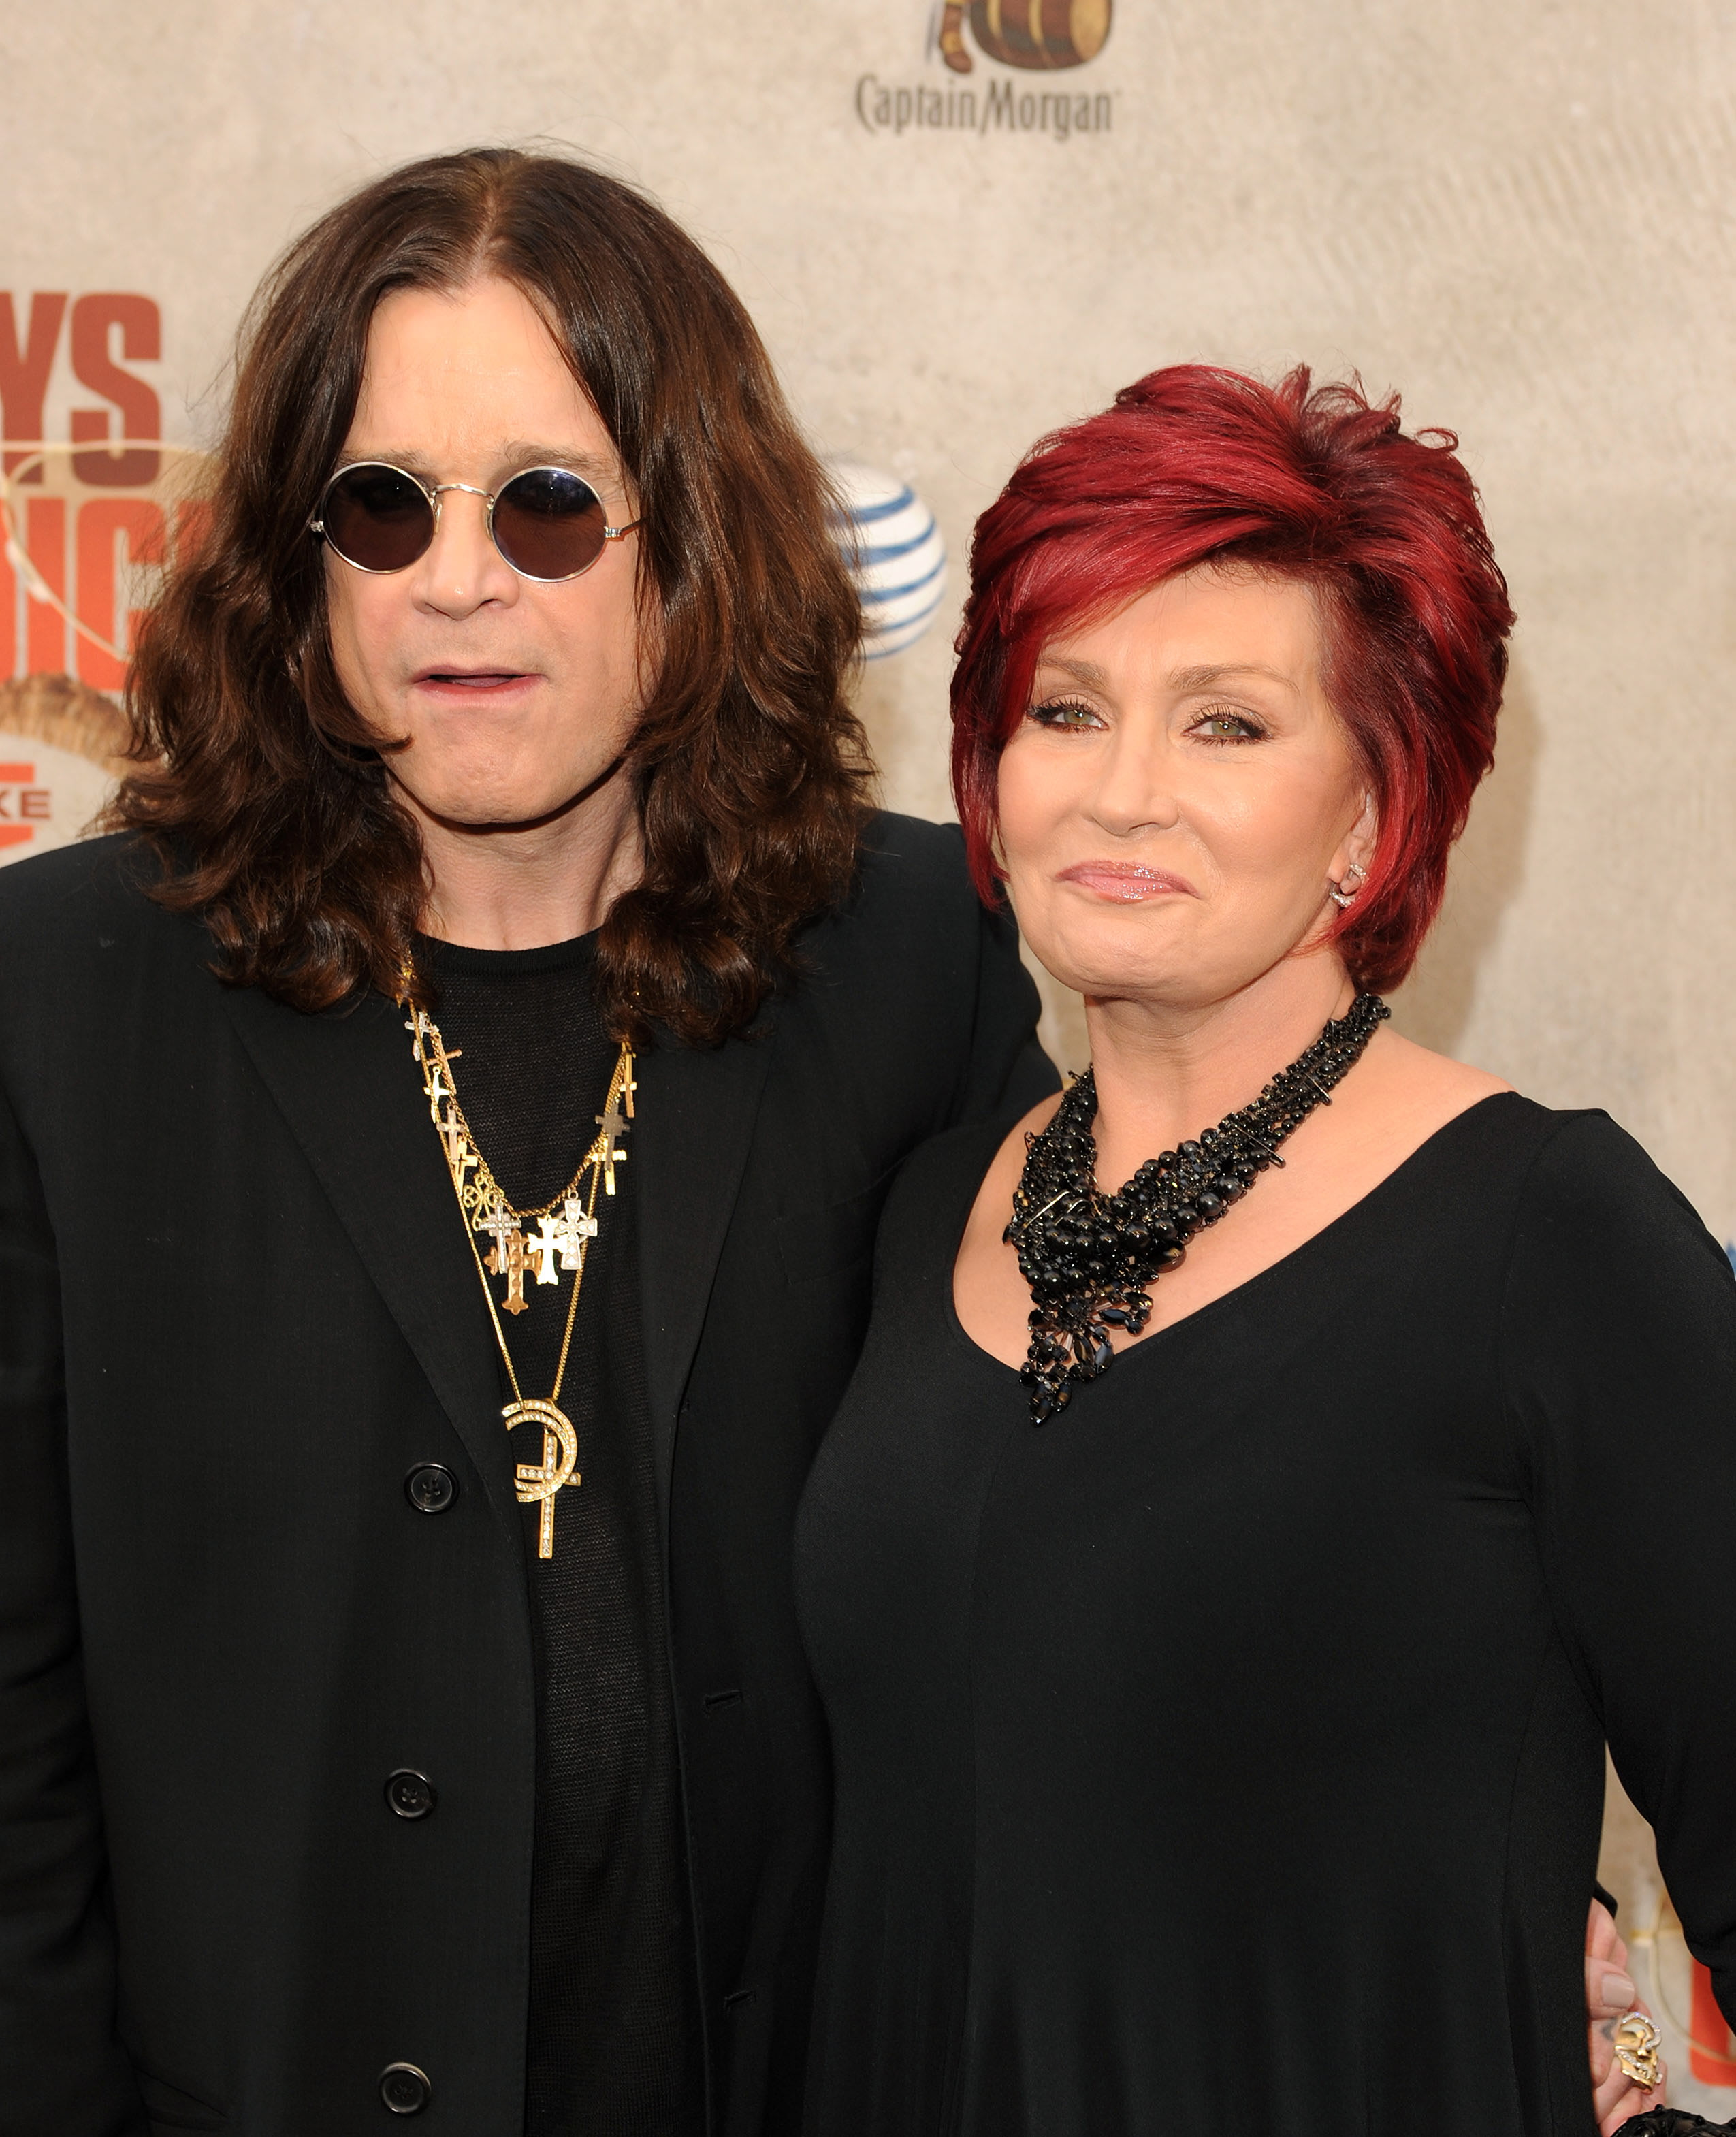 Ozzy Osbourne - Wikipedia Pictures of ozzy and sharon osbourne